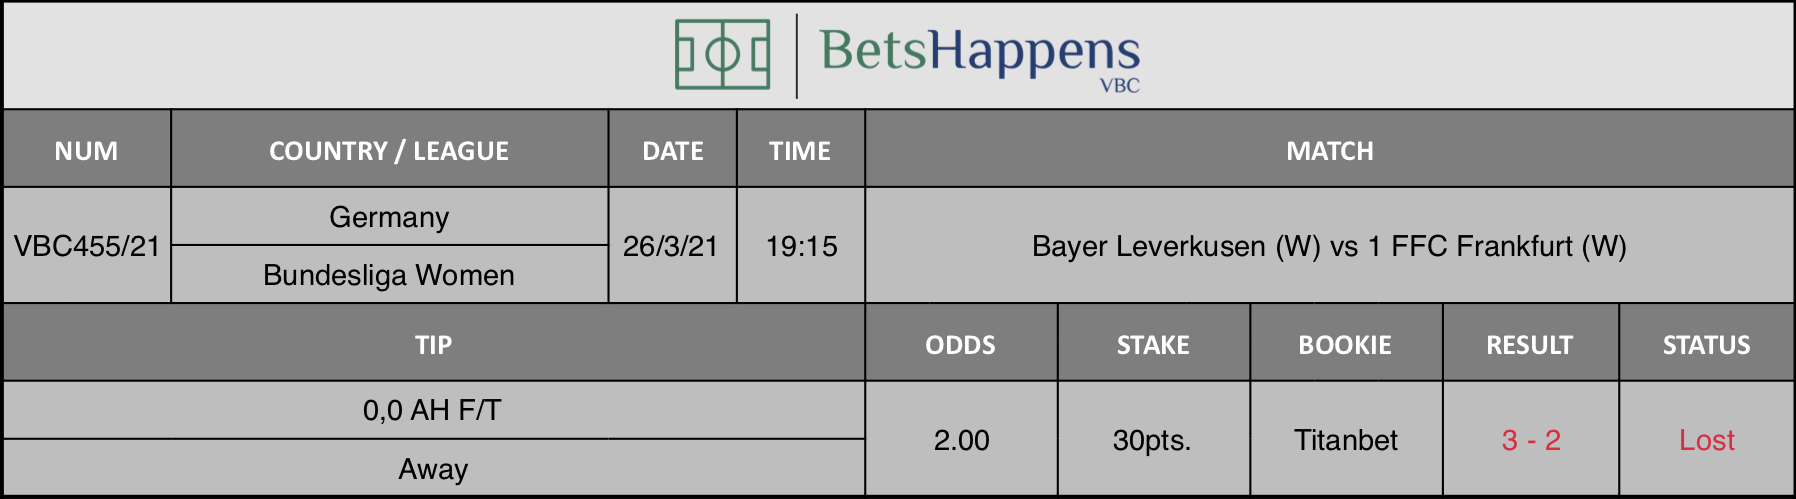 Results of our tip for the Bayer Leverkusen (W) vs 1 FFC Frankfurt (W) match where 0,0 AH F/T  Away is recommended.